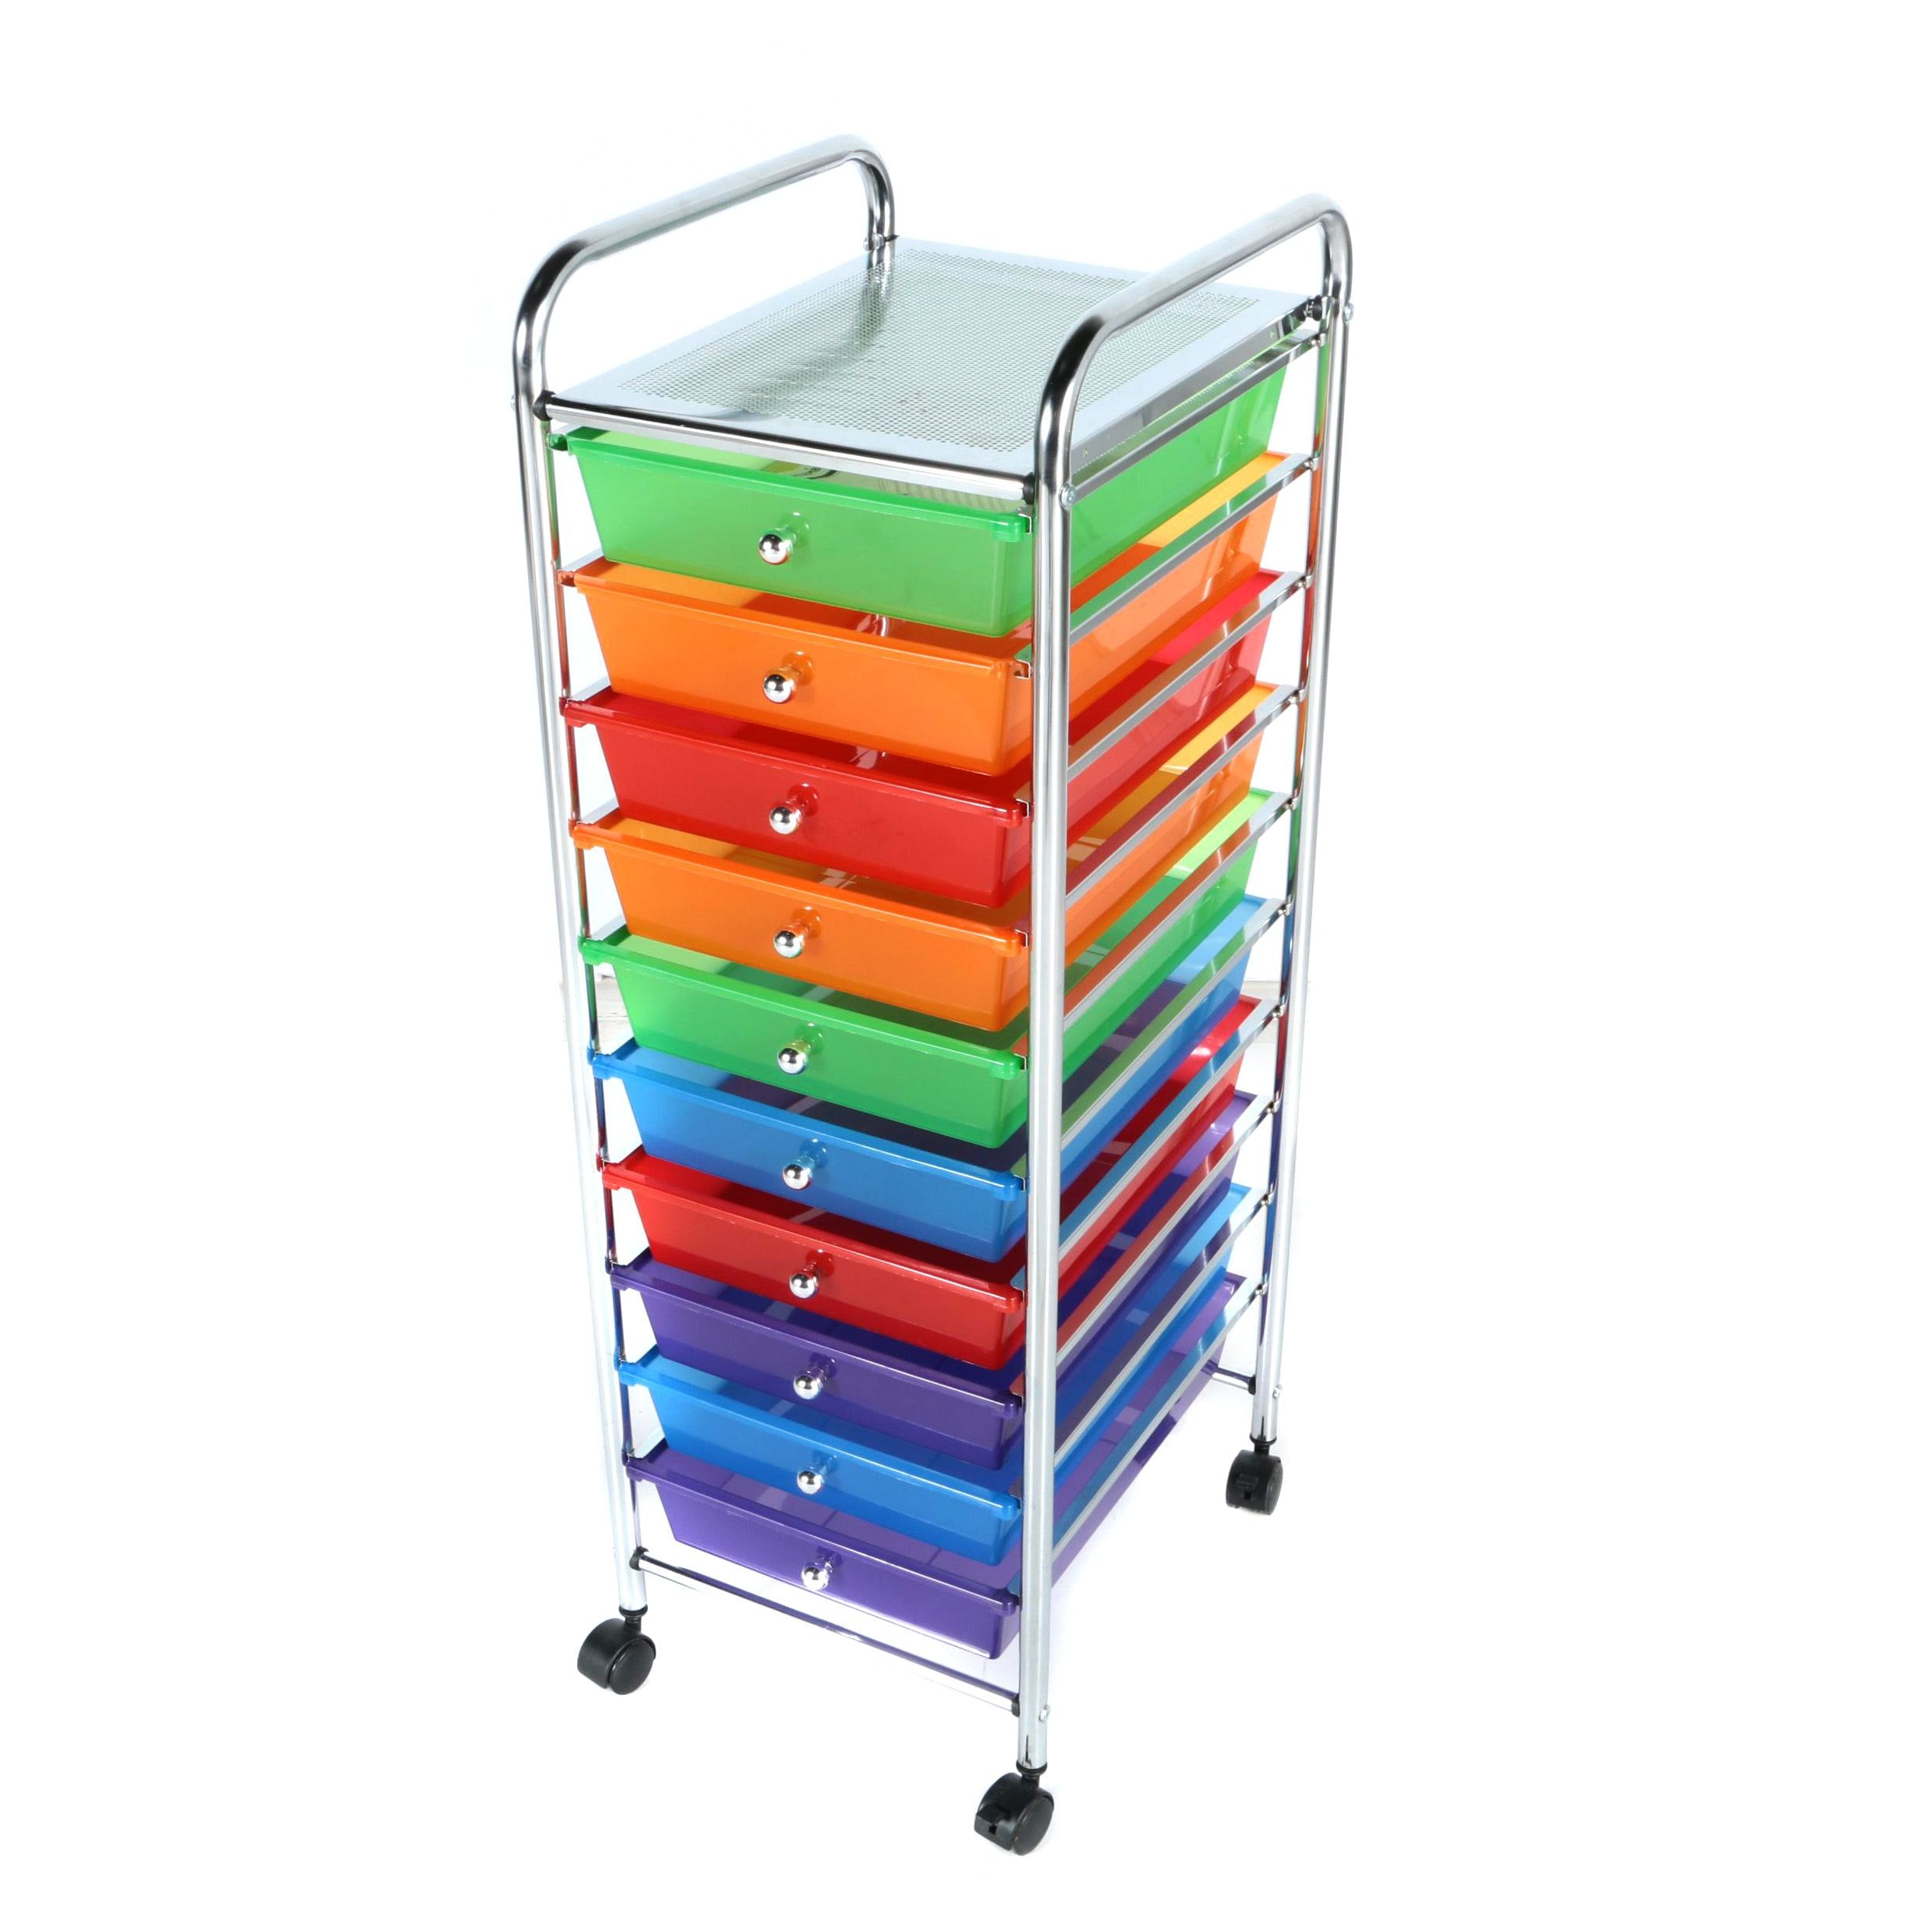 Colorful Storage Drawers on Wheels